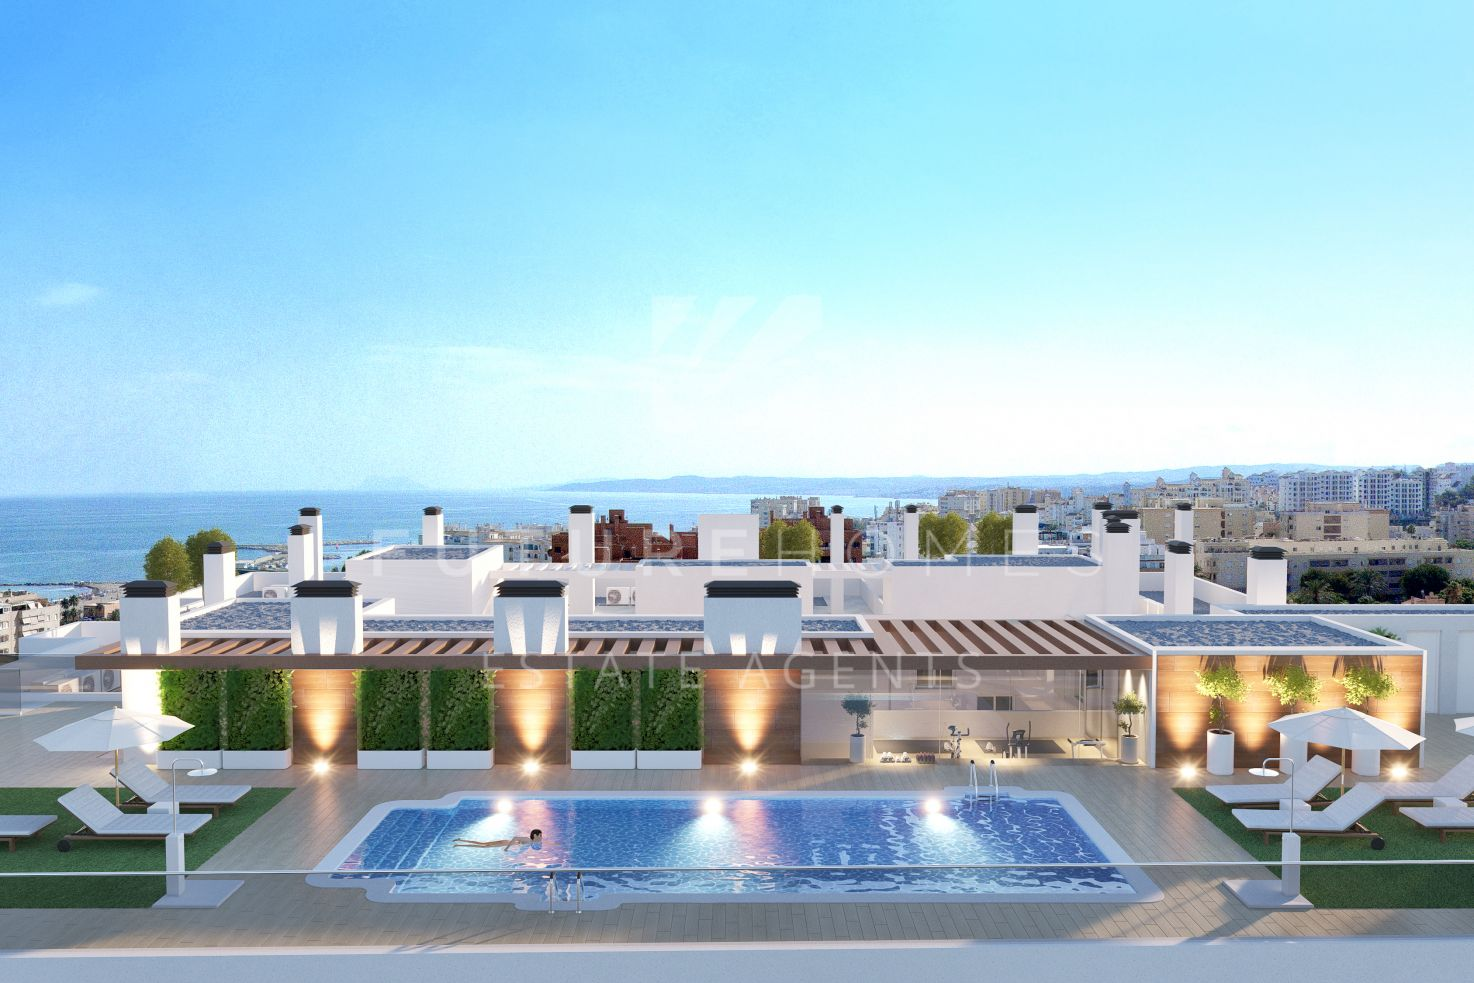 New modern development in Estepona centre, just 150 meters from the beach with parking and swimming pool